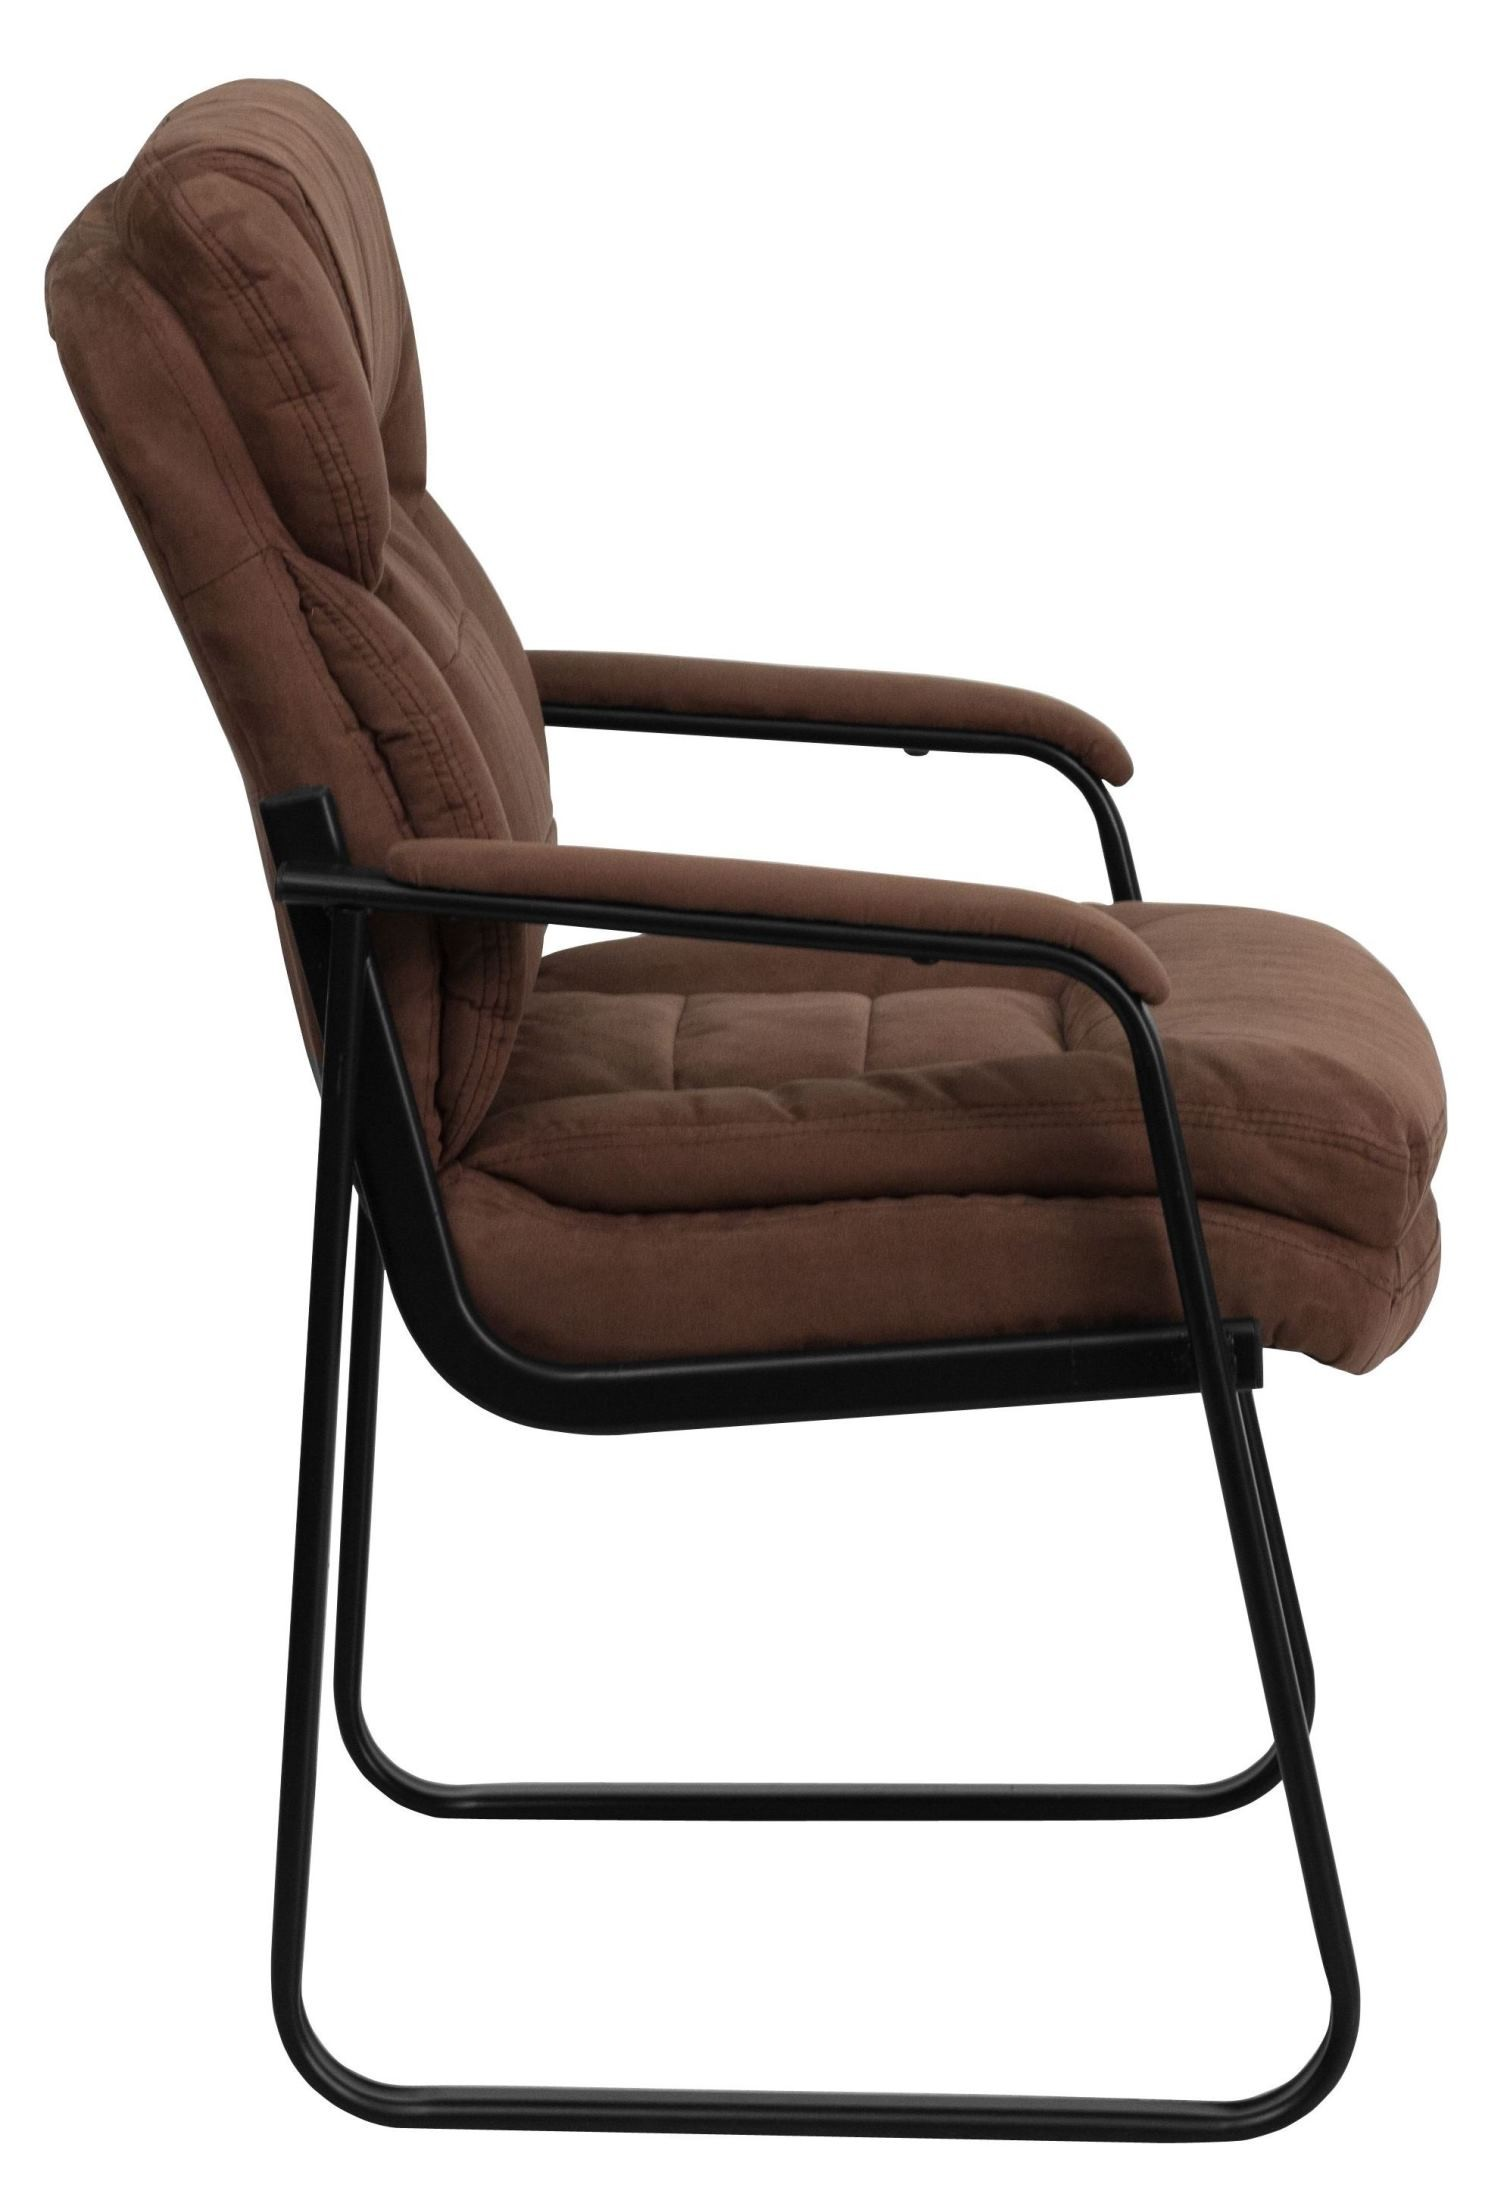 sled base side chair from renegade go 1156 bn gg coleman furniture